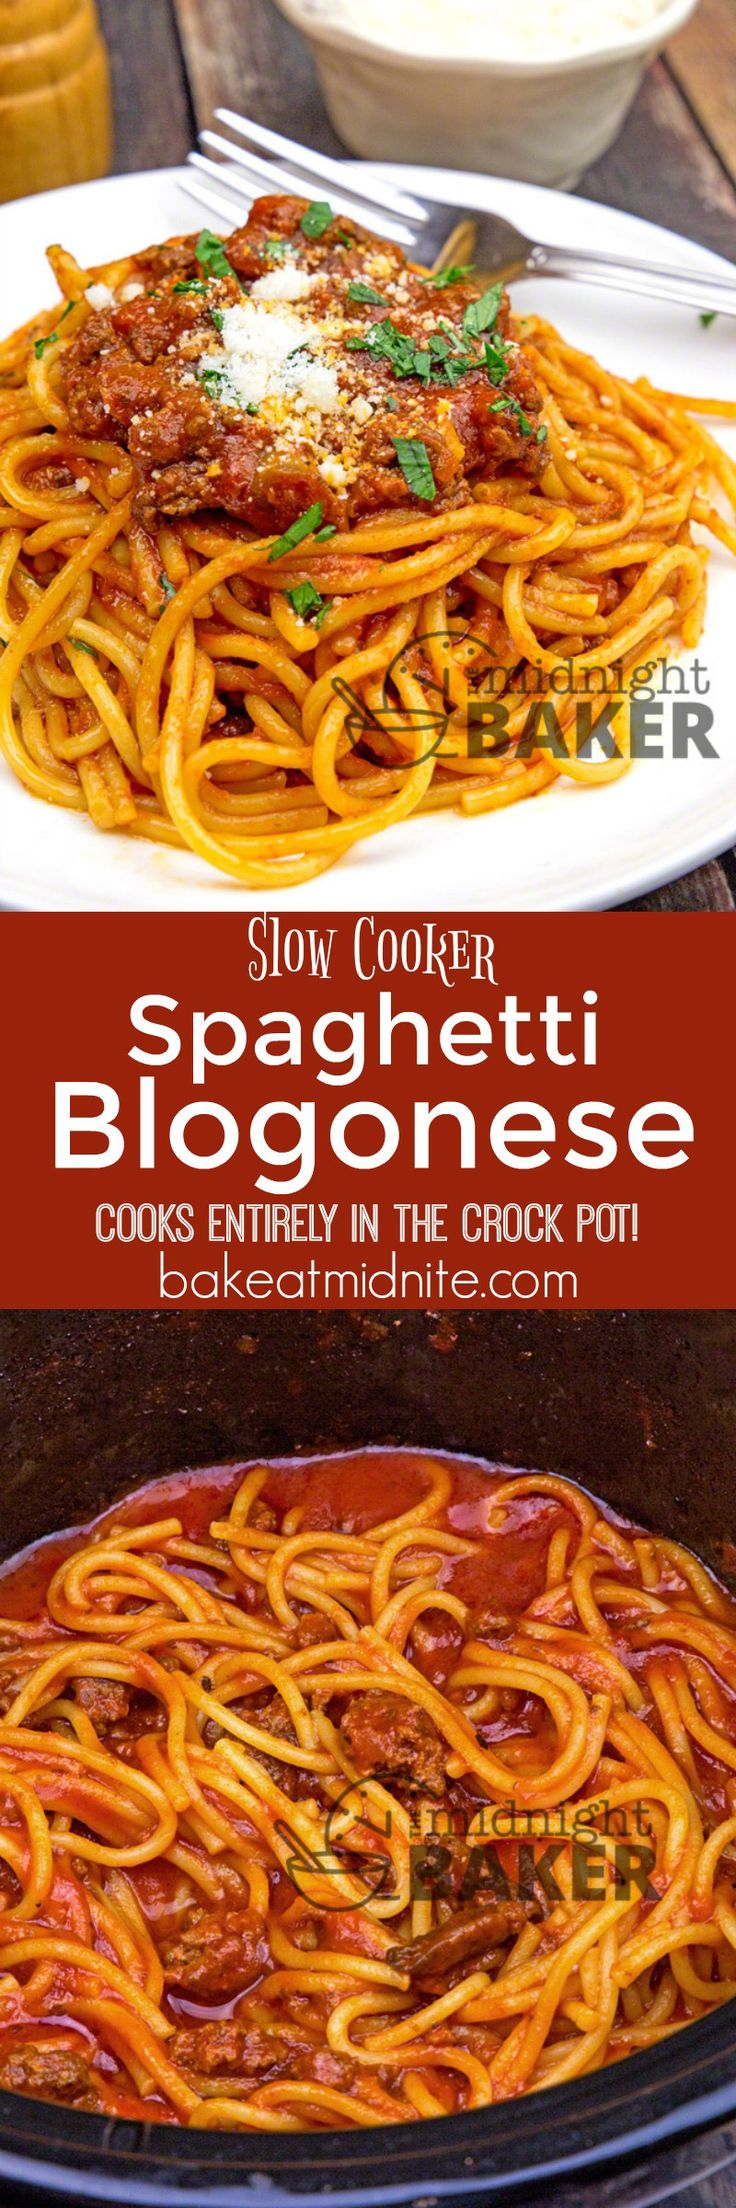 This delicious spaghetti bolognese cooks completely in your slow cooker. Kid and adult friendly and sure to become a family favorite!